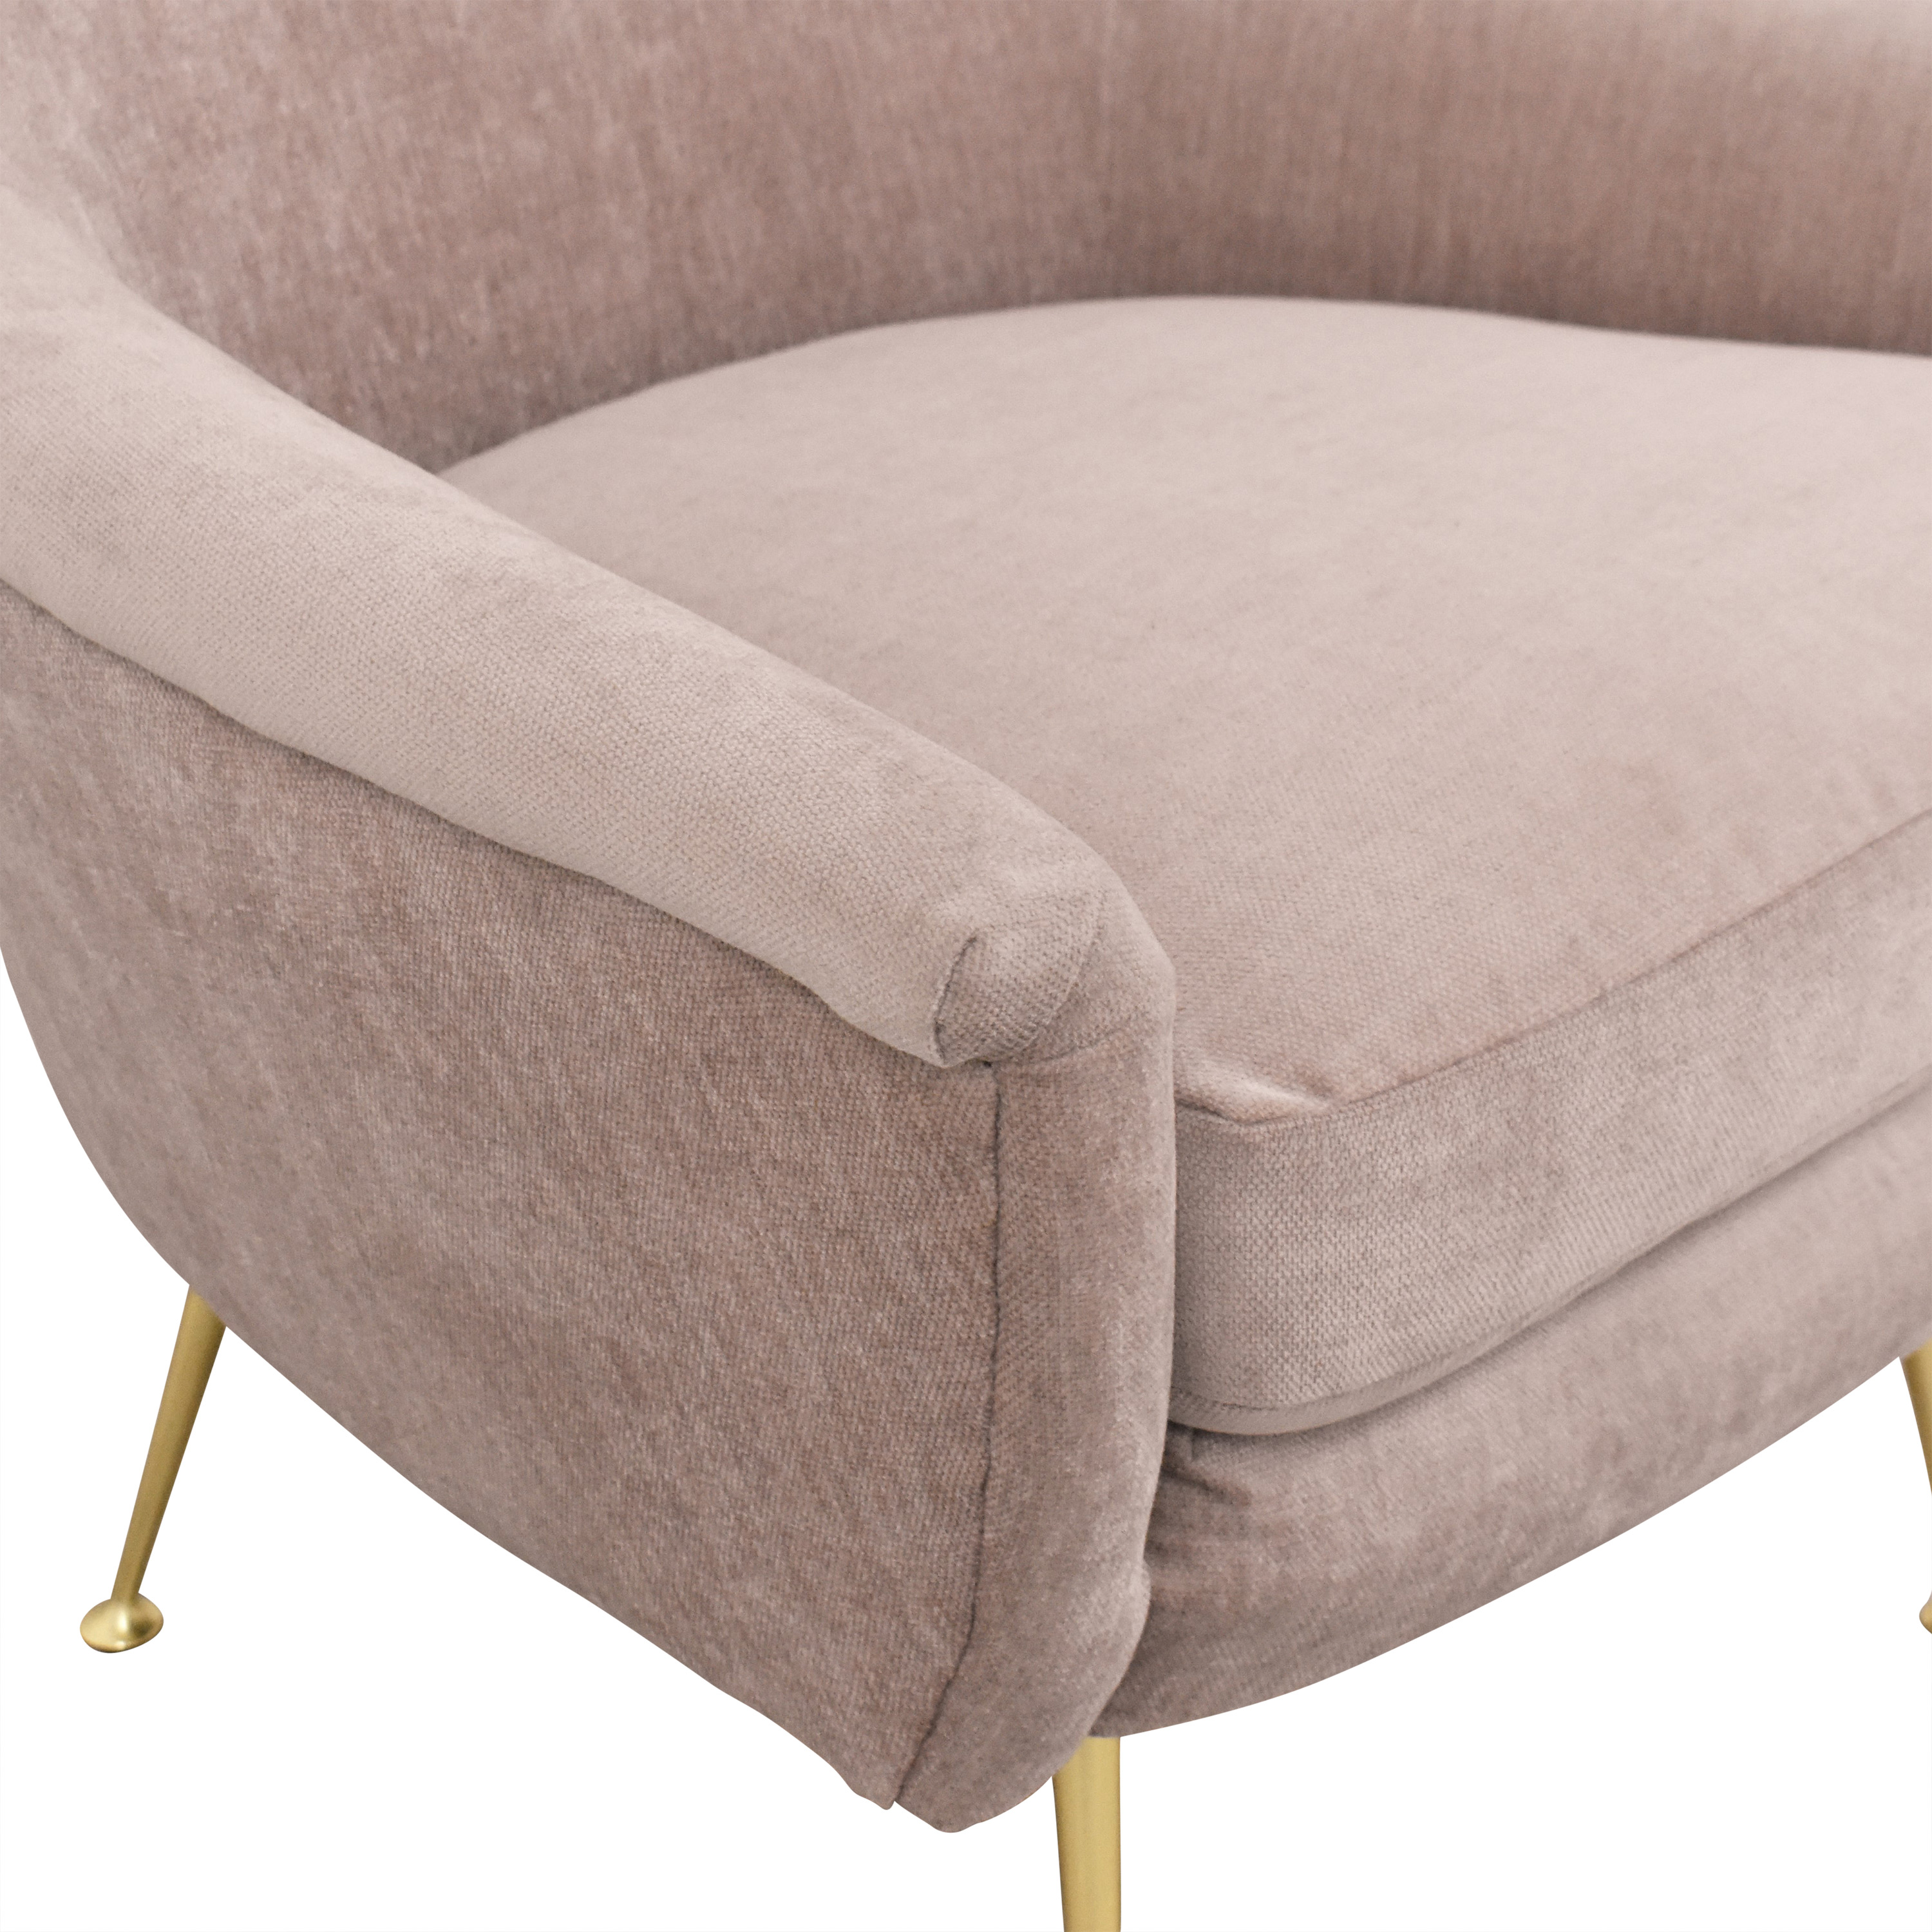 West Elm Phoebe Accent Chair / Accent Chairs